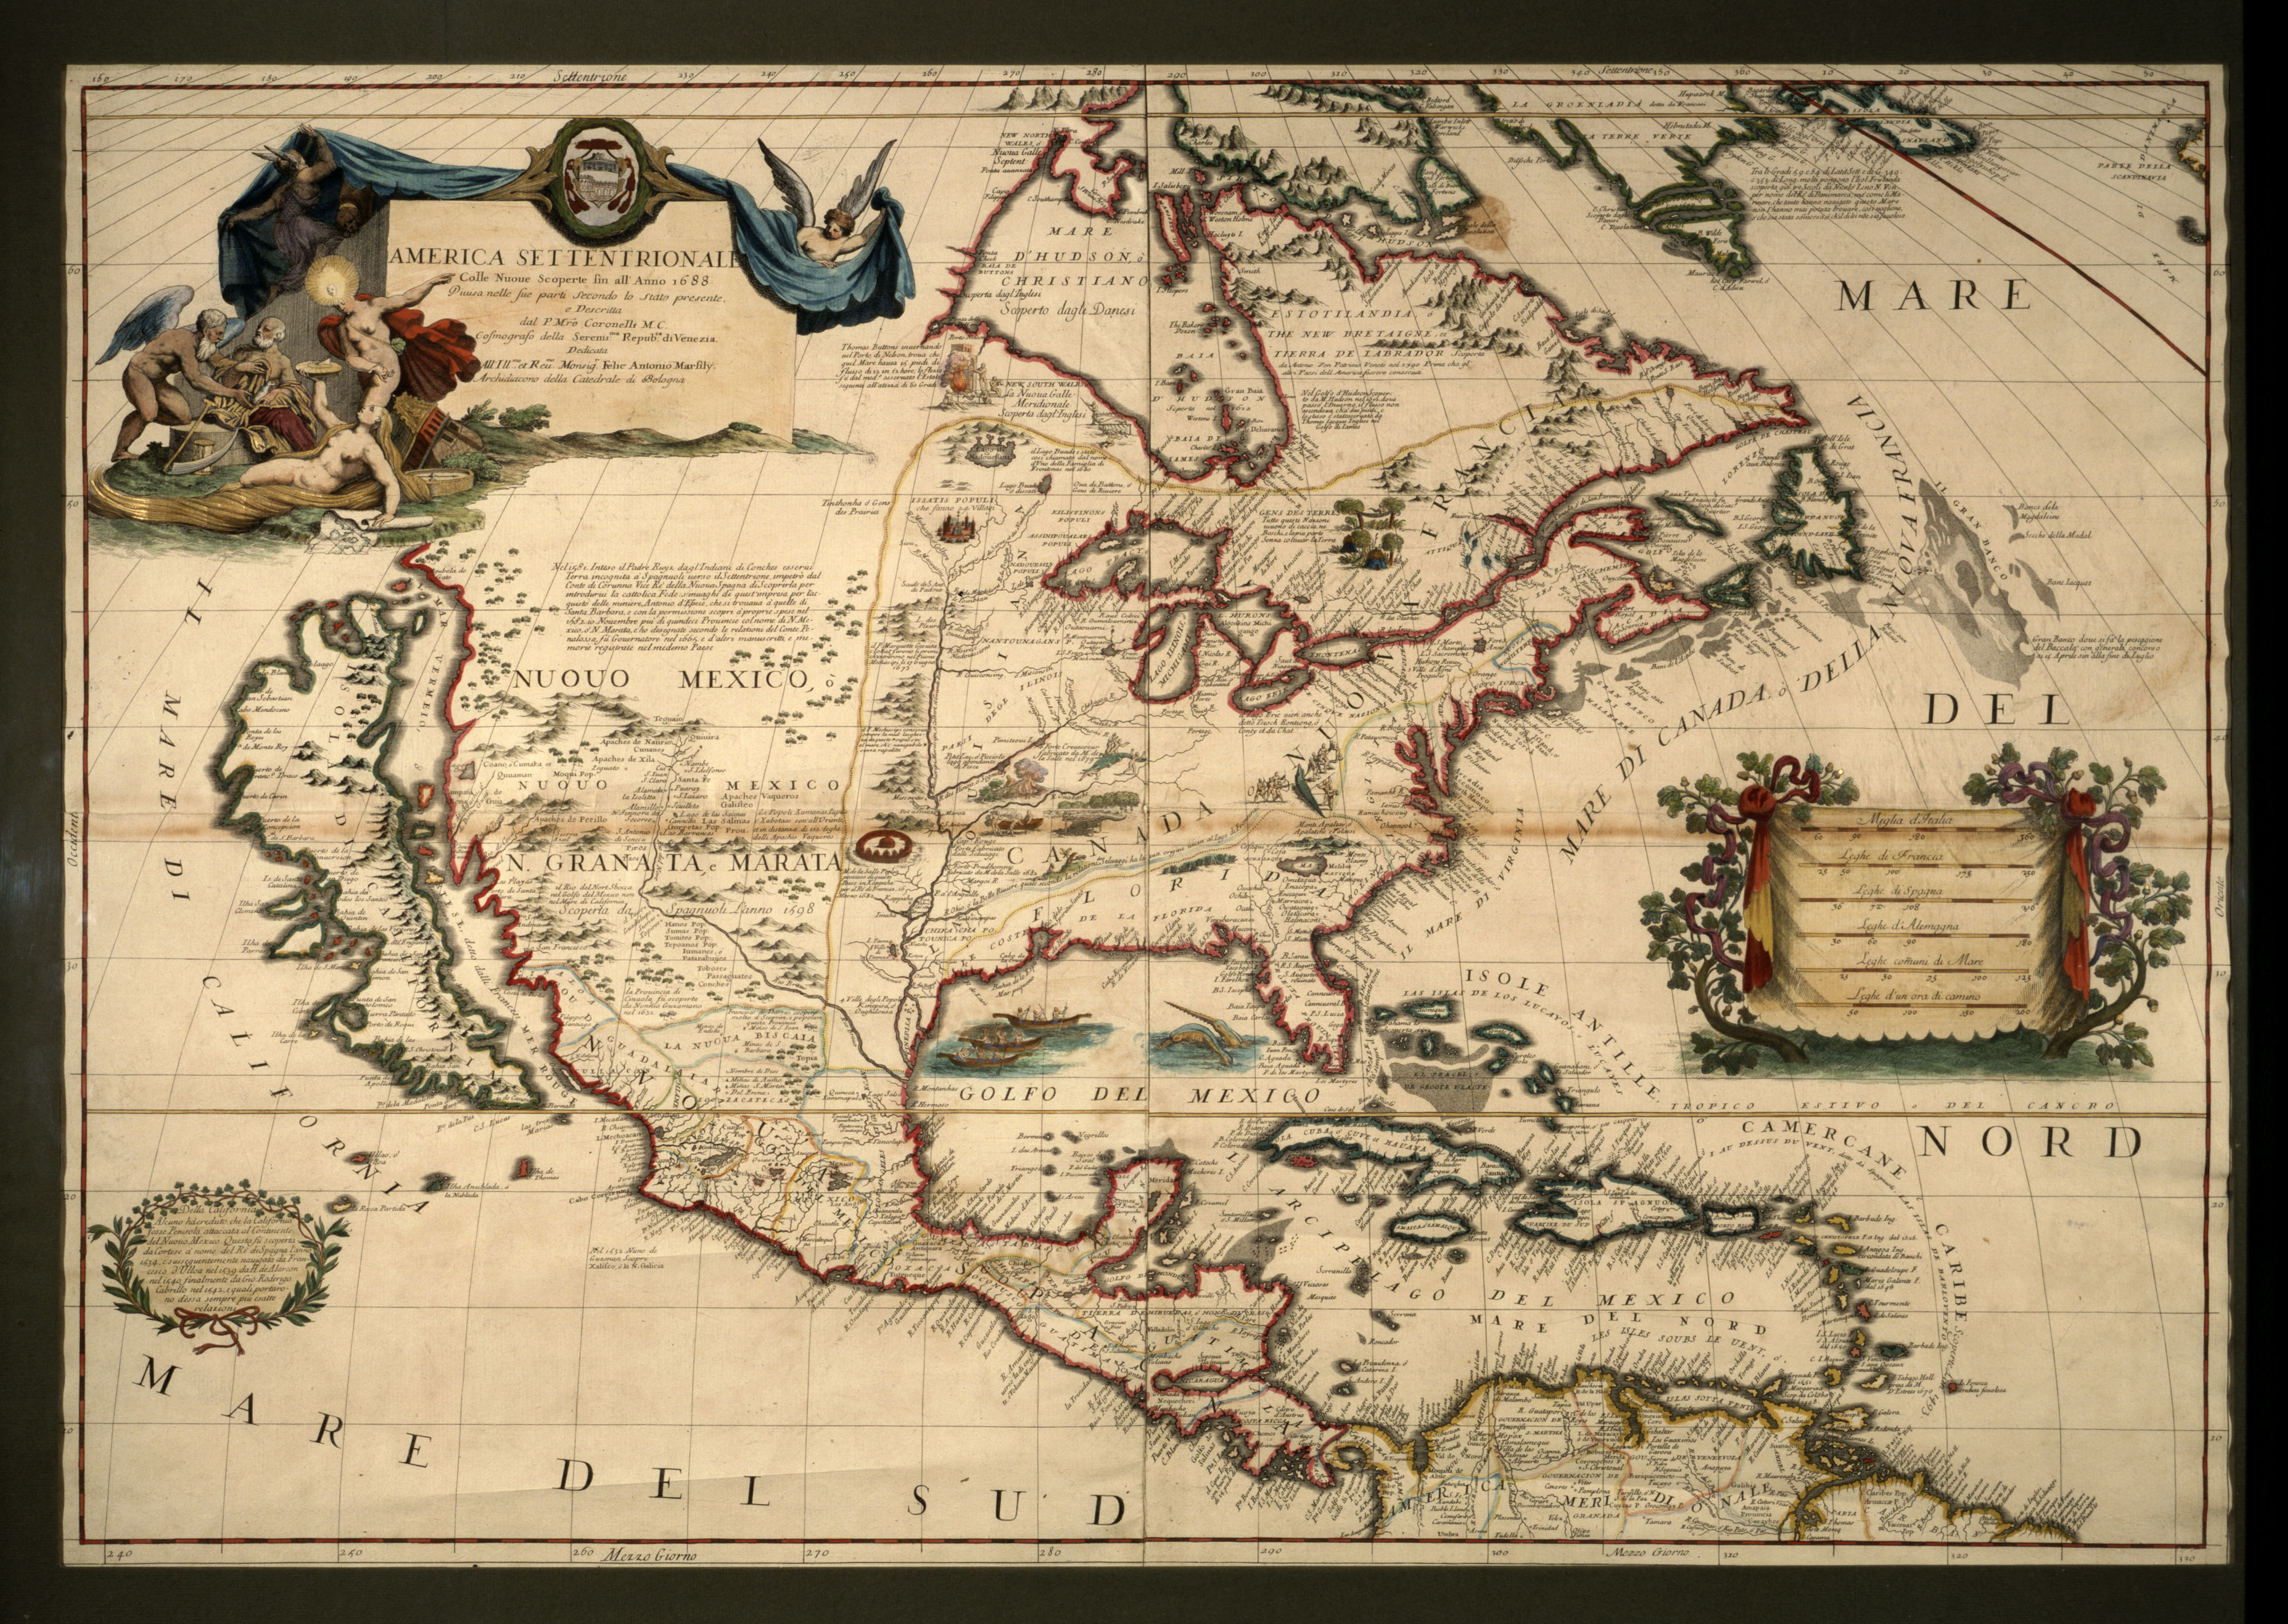 America Setentrionale Map of the North America Picture This